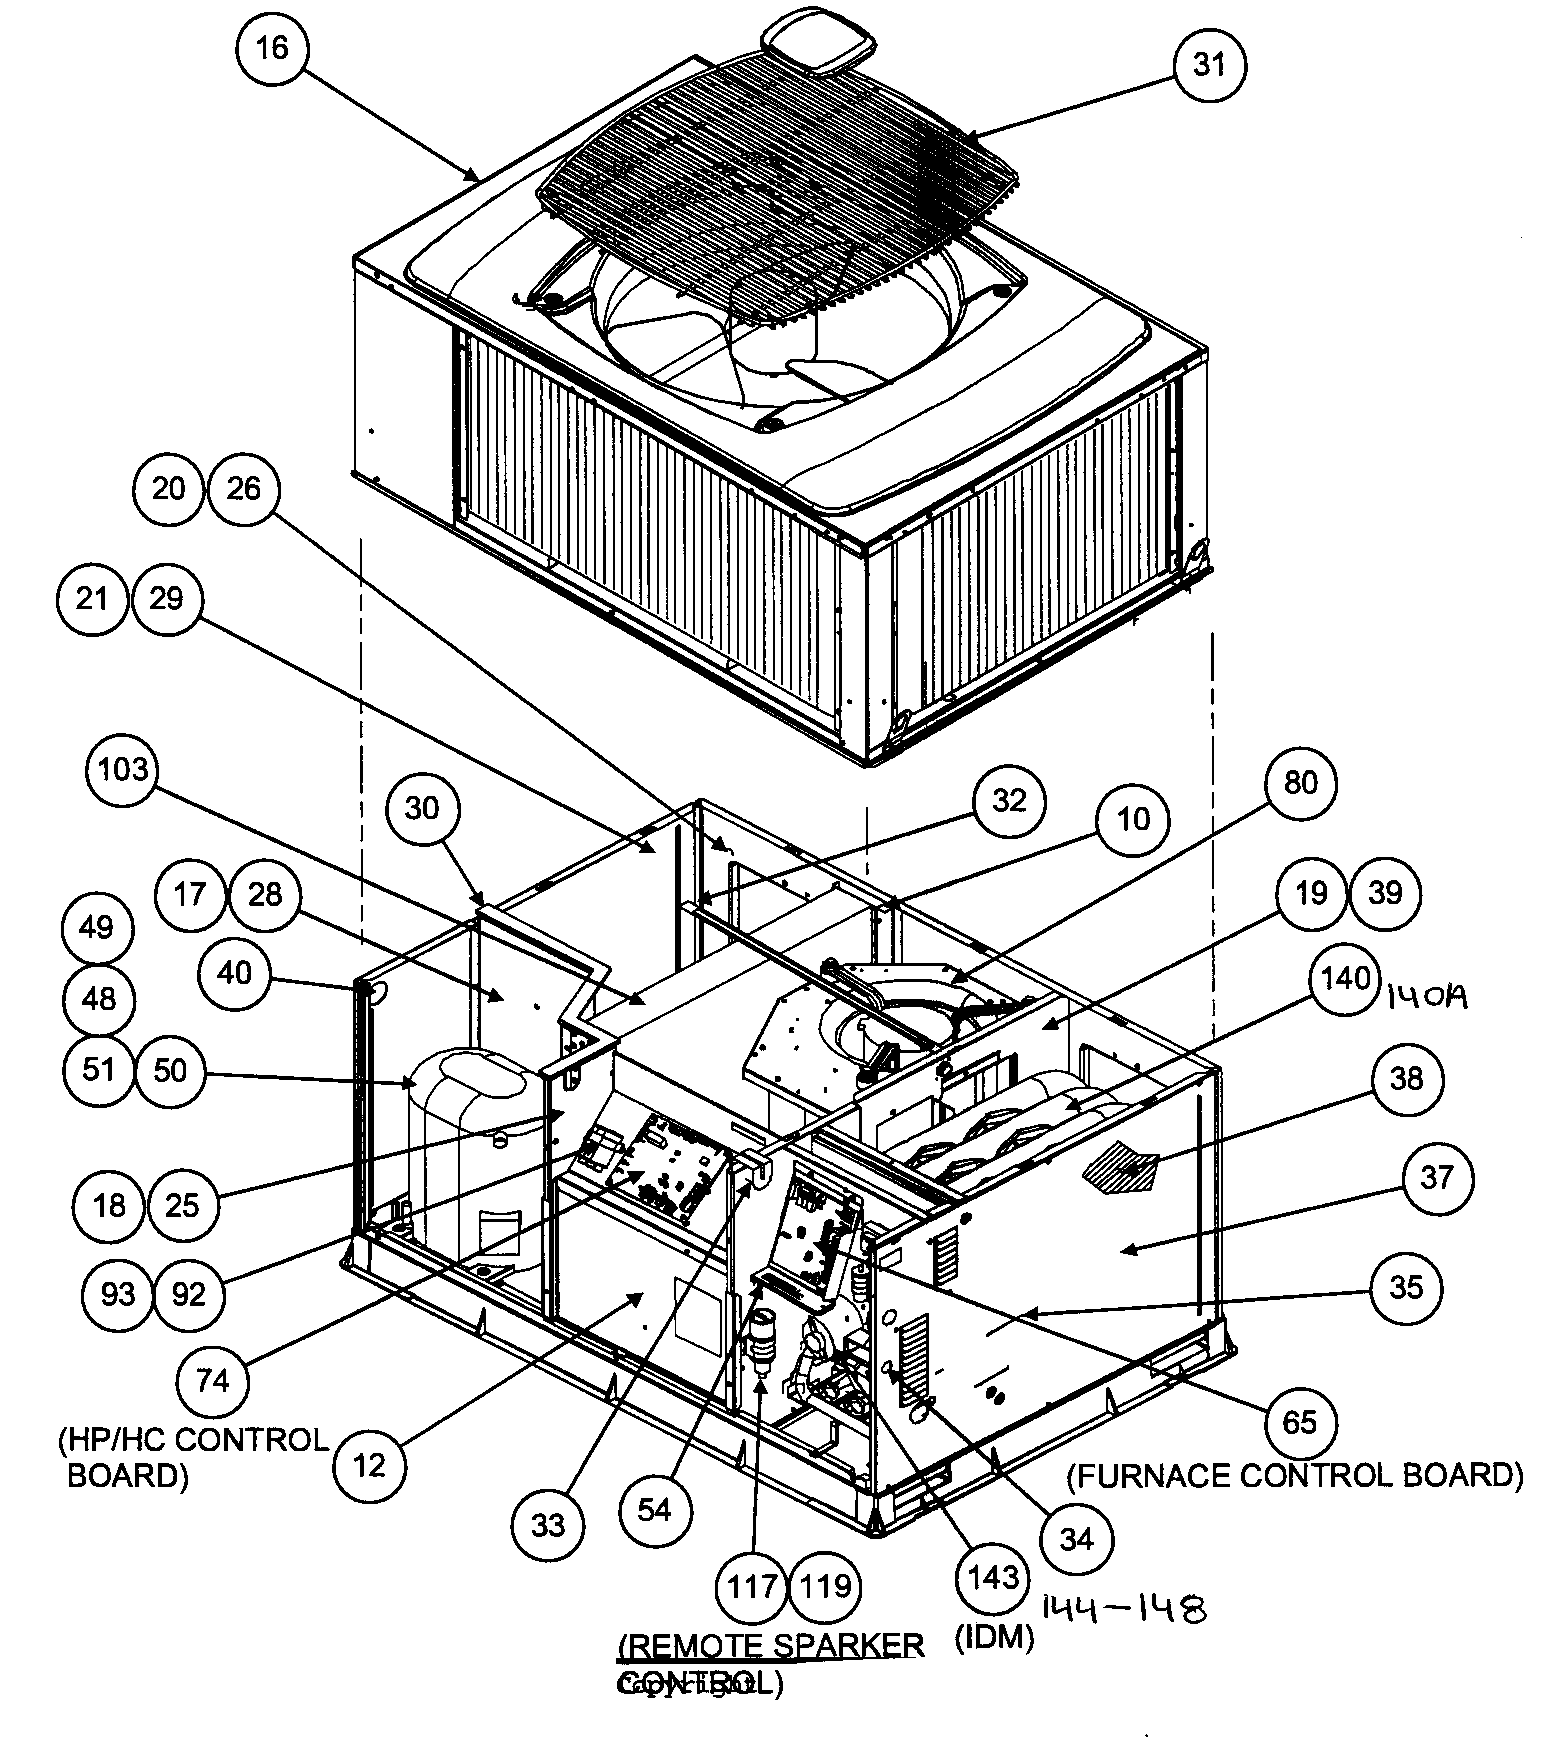 OUTSIDE VIEW Diagram & Parts List for Model 48XT036090300